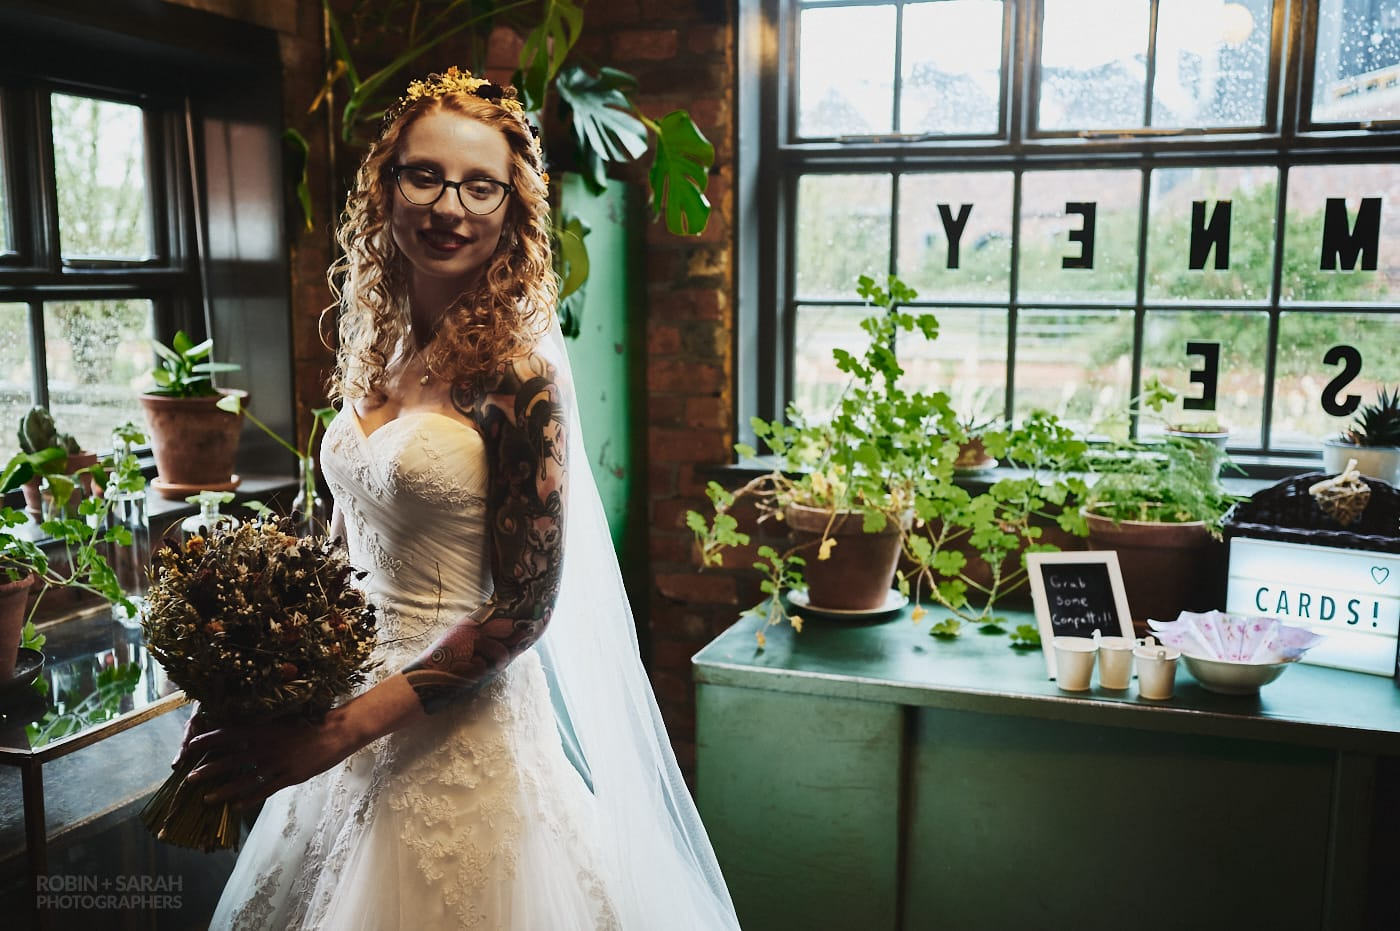 Bride portrait in strong light at The Chimney House wedding venue in Sheffield